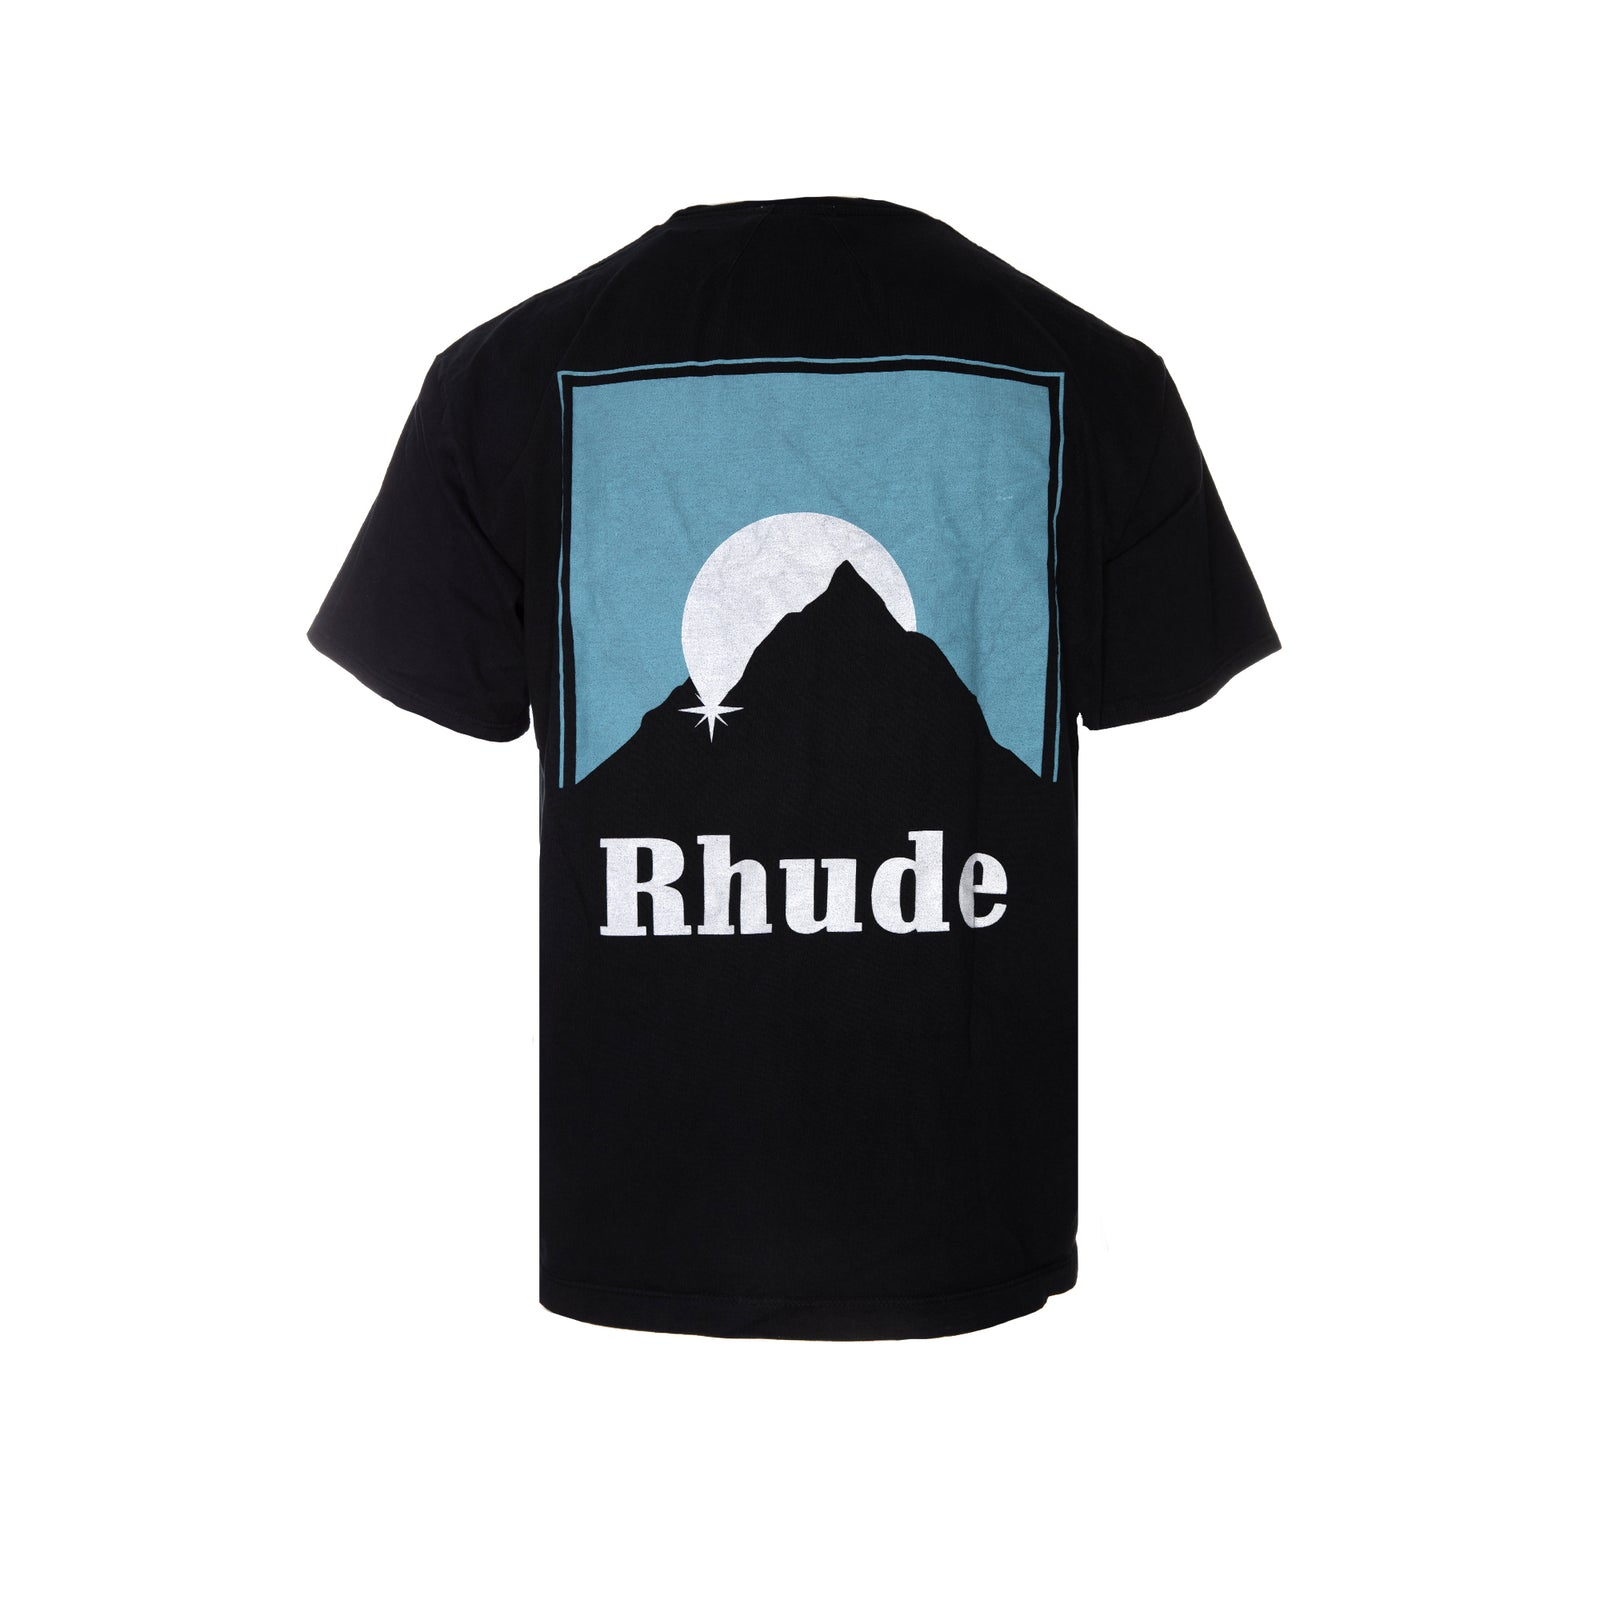 Rhude Sundry Men's Short Sleeve Tee Black